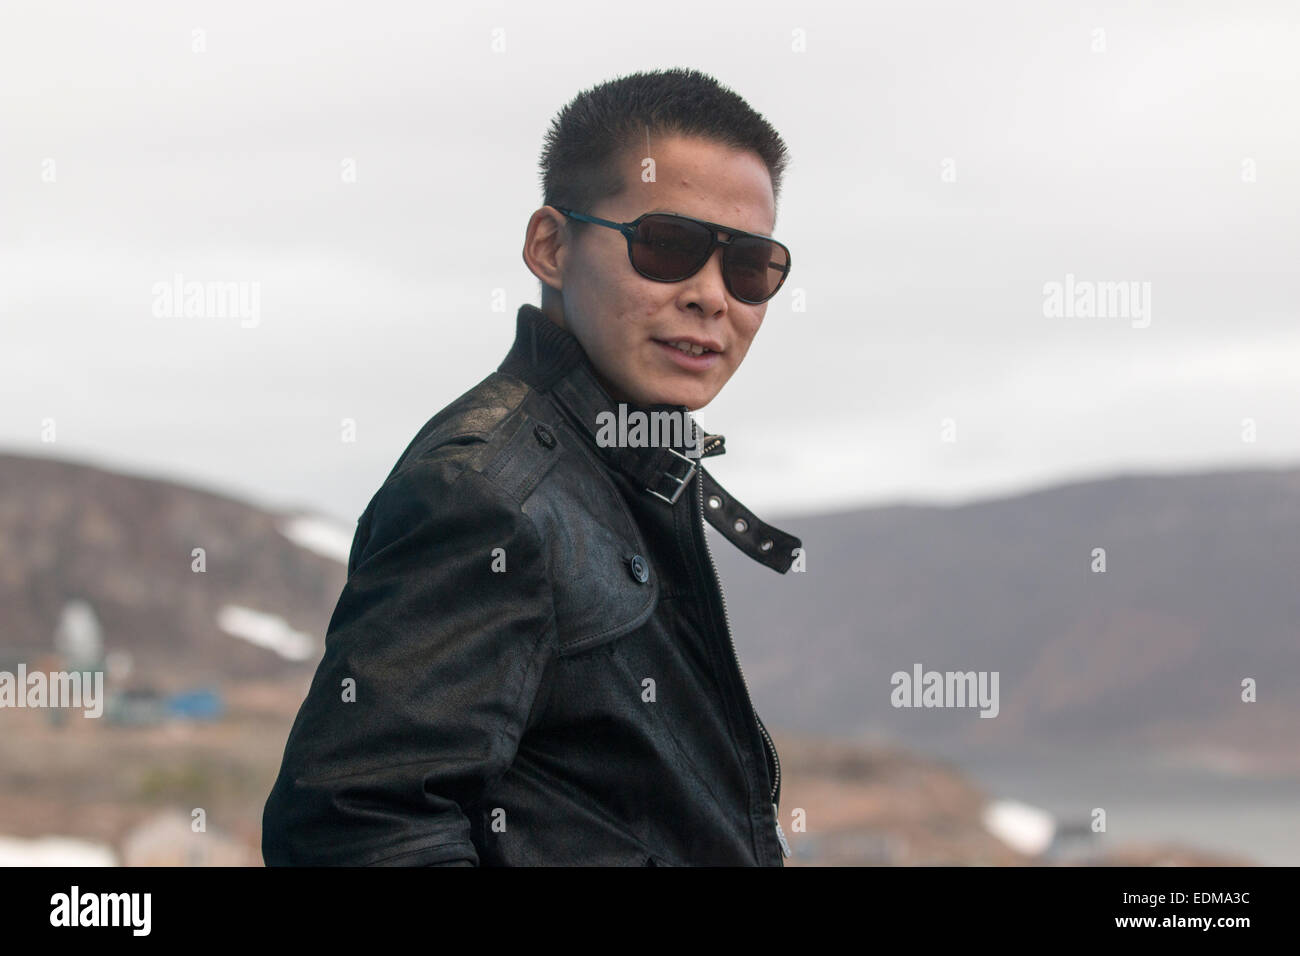 Kristian Karl, 19, from East Greenland. - Stock Image